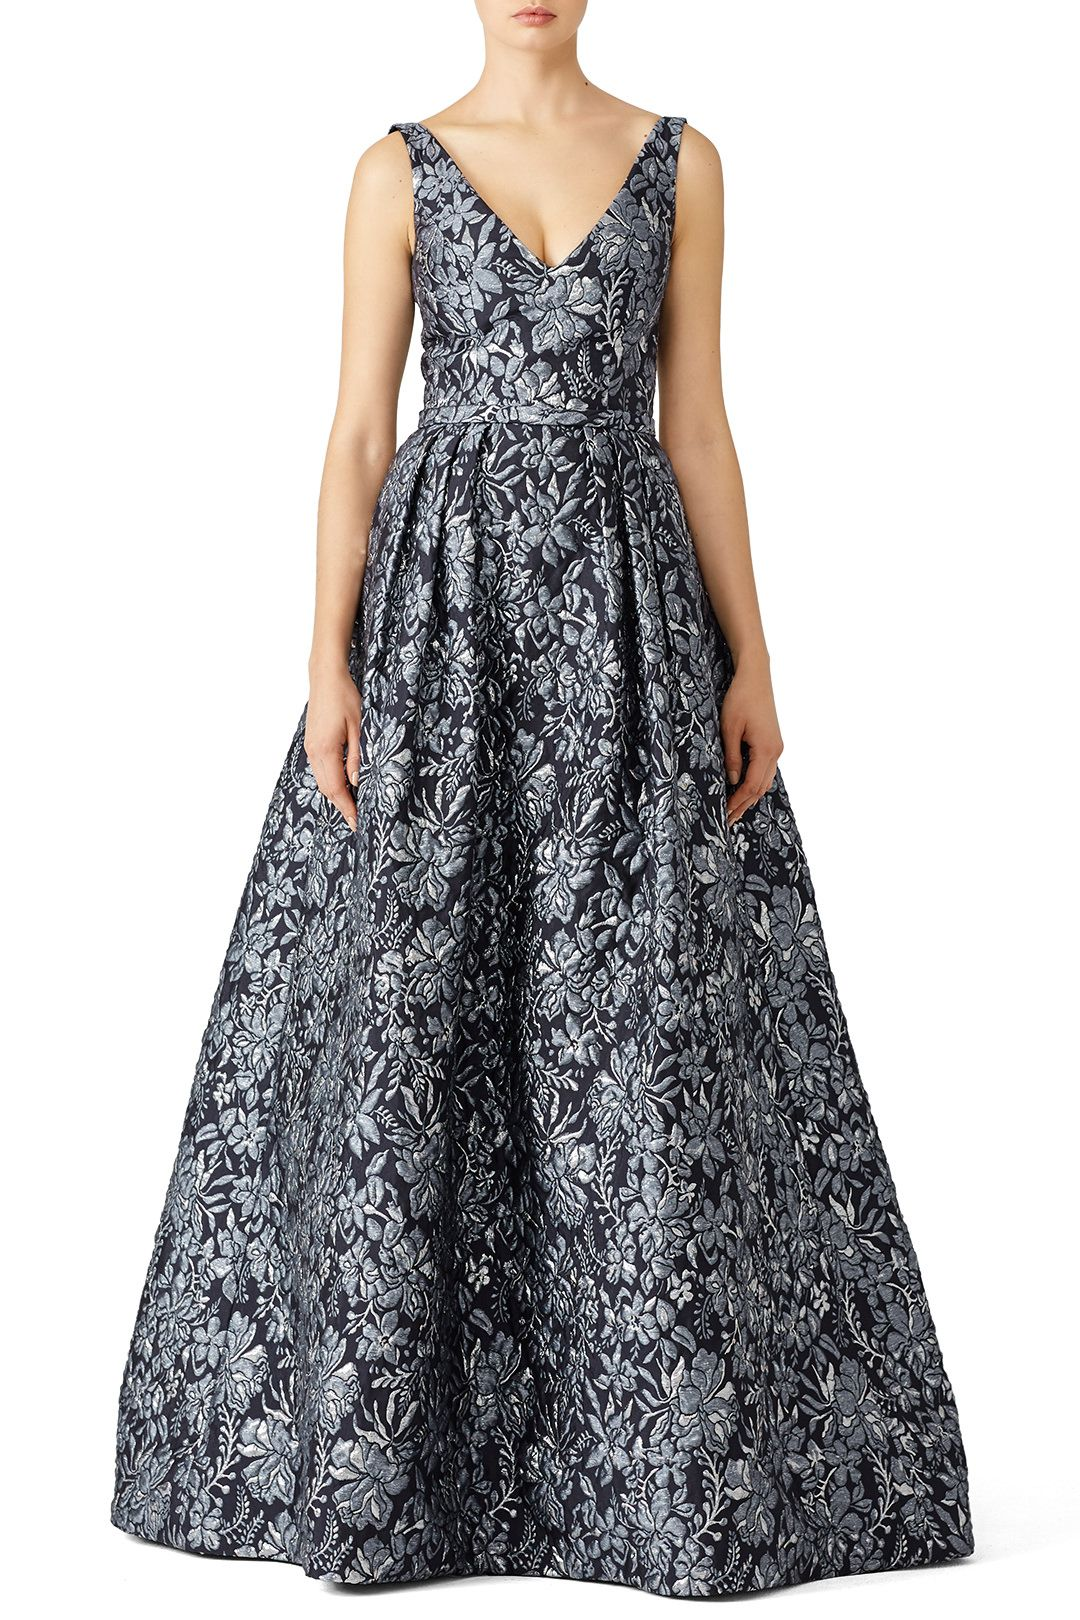 Floral Slate Ballgown | Fashion | Pinterest | Slate, Floral and ...